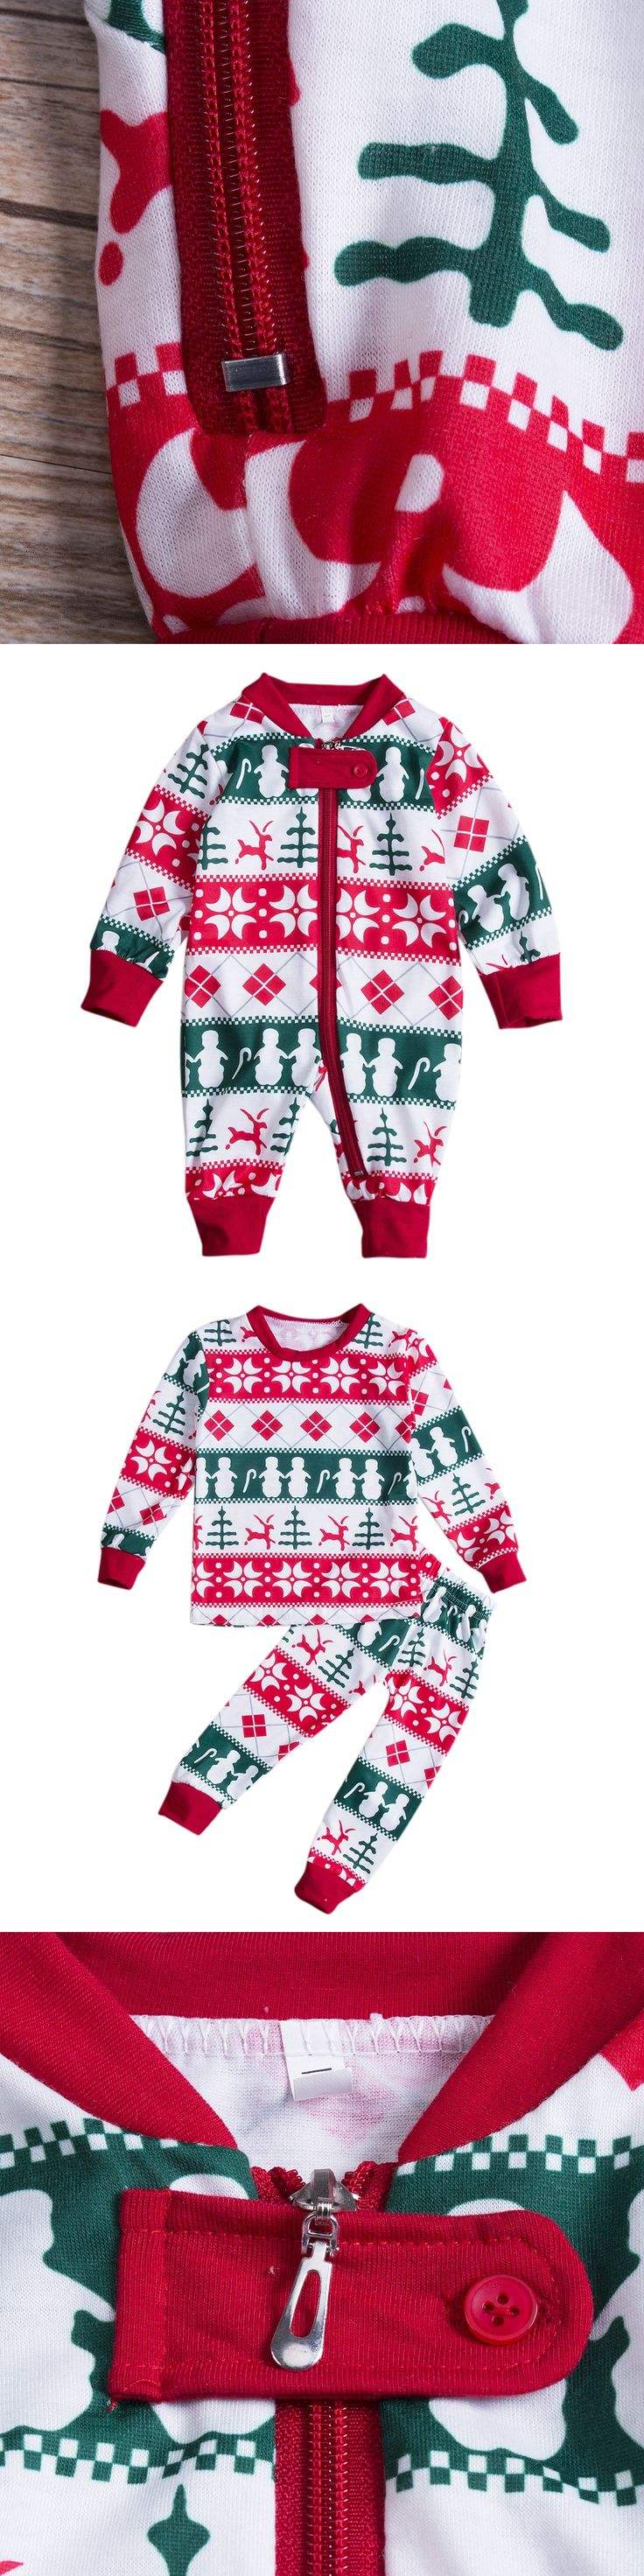 Family Matching Christmas Pajamas Set Men's Women Baby Kids Deer Cartoon Pattern Sleepwear Nightwear Soft Cotton